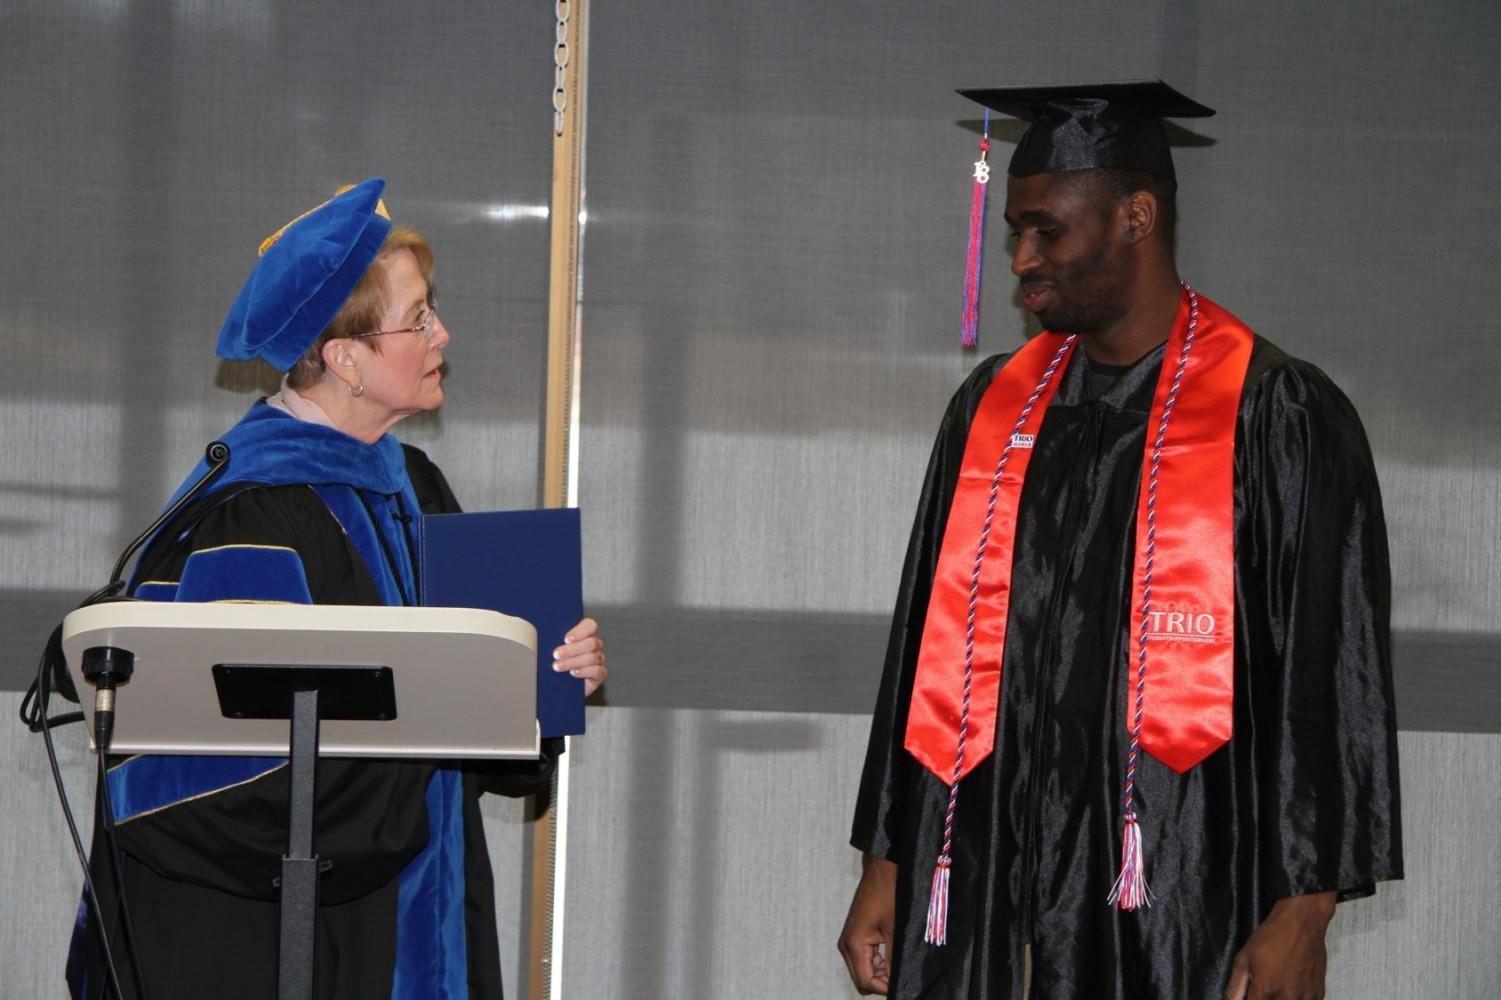 President Charlotte Warren prepares to hand Fall 2018 LLCC graduate his diploma in the R.H. Stephens Room on Jan. 16. Campbell is deploying to the Middle East with the Air National Guard, so he won't be able to attend graduation in May. The college held an impromptu ceremony to award his diploma and honor his achievement.